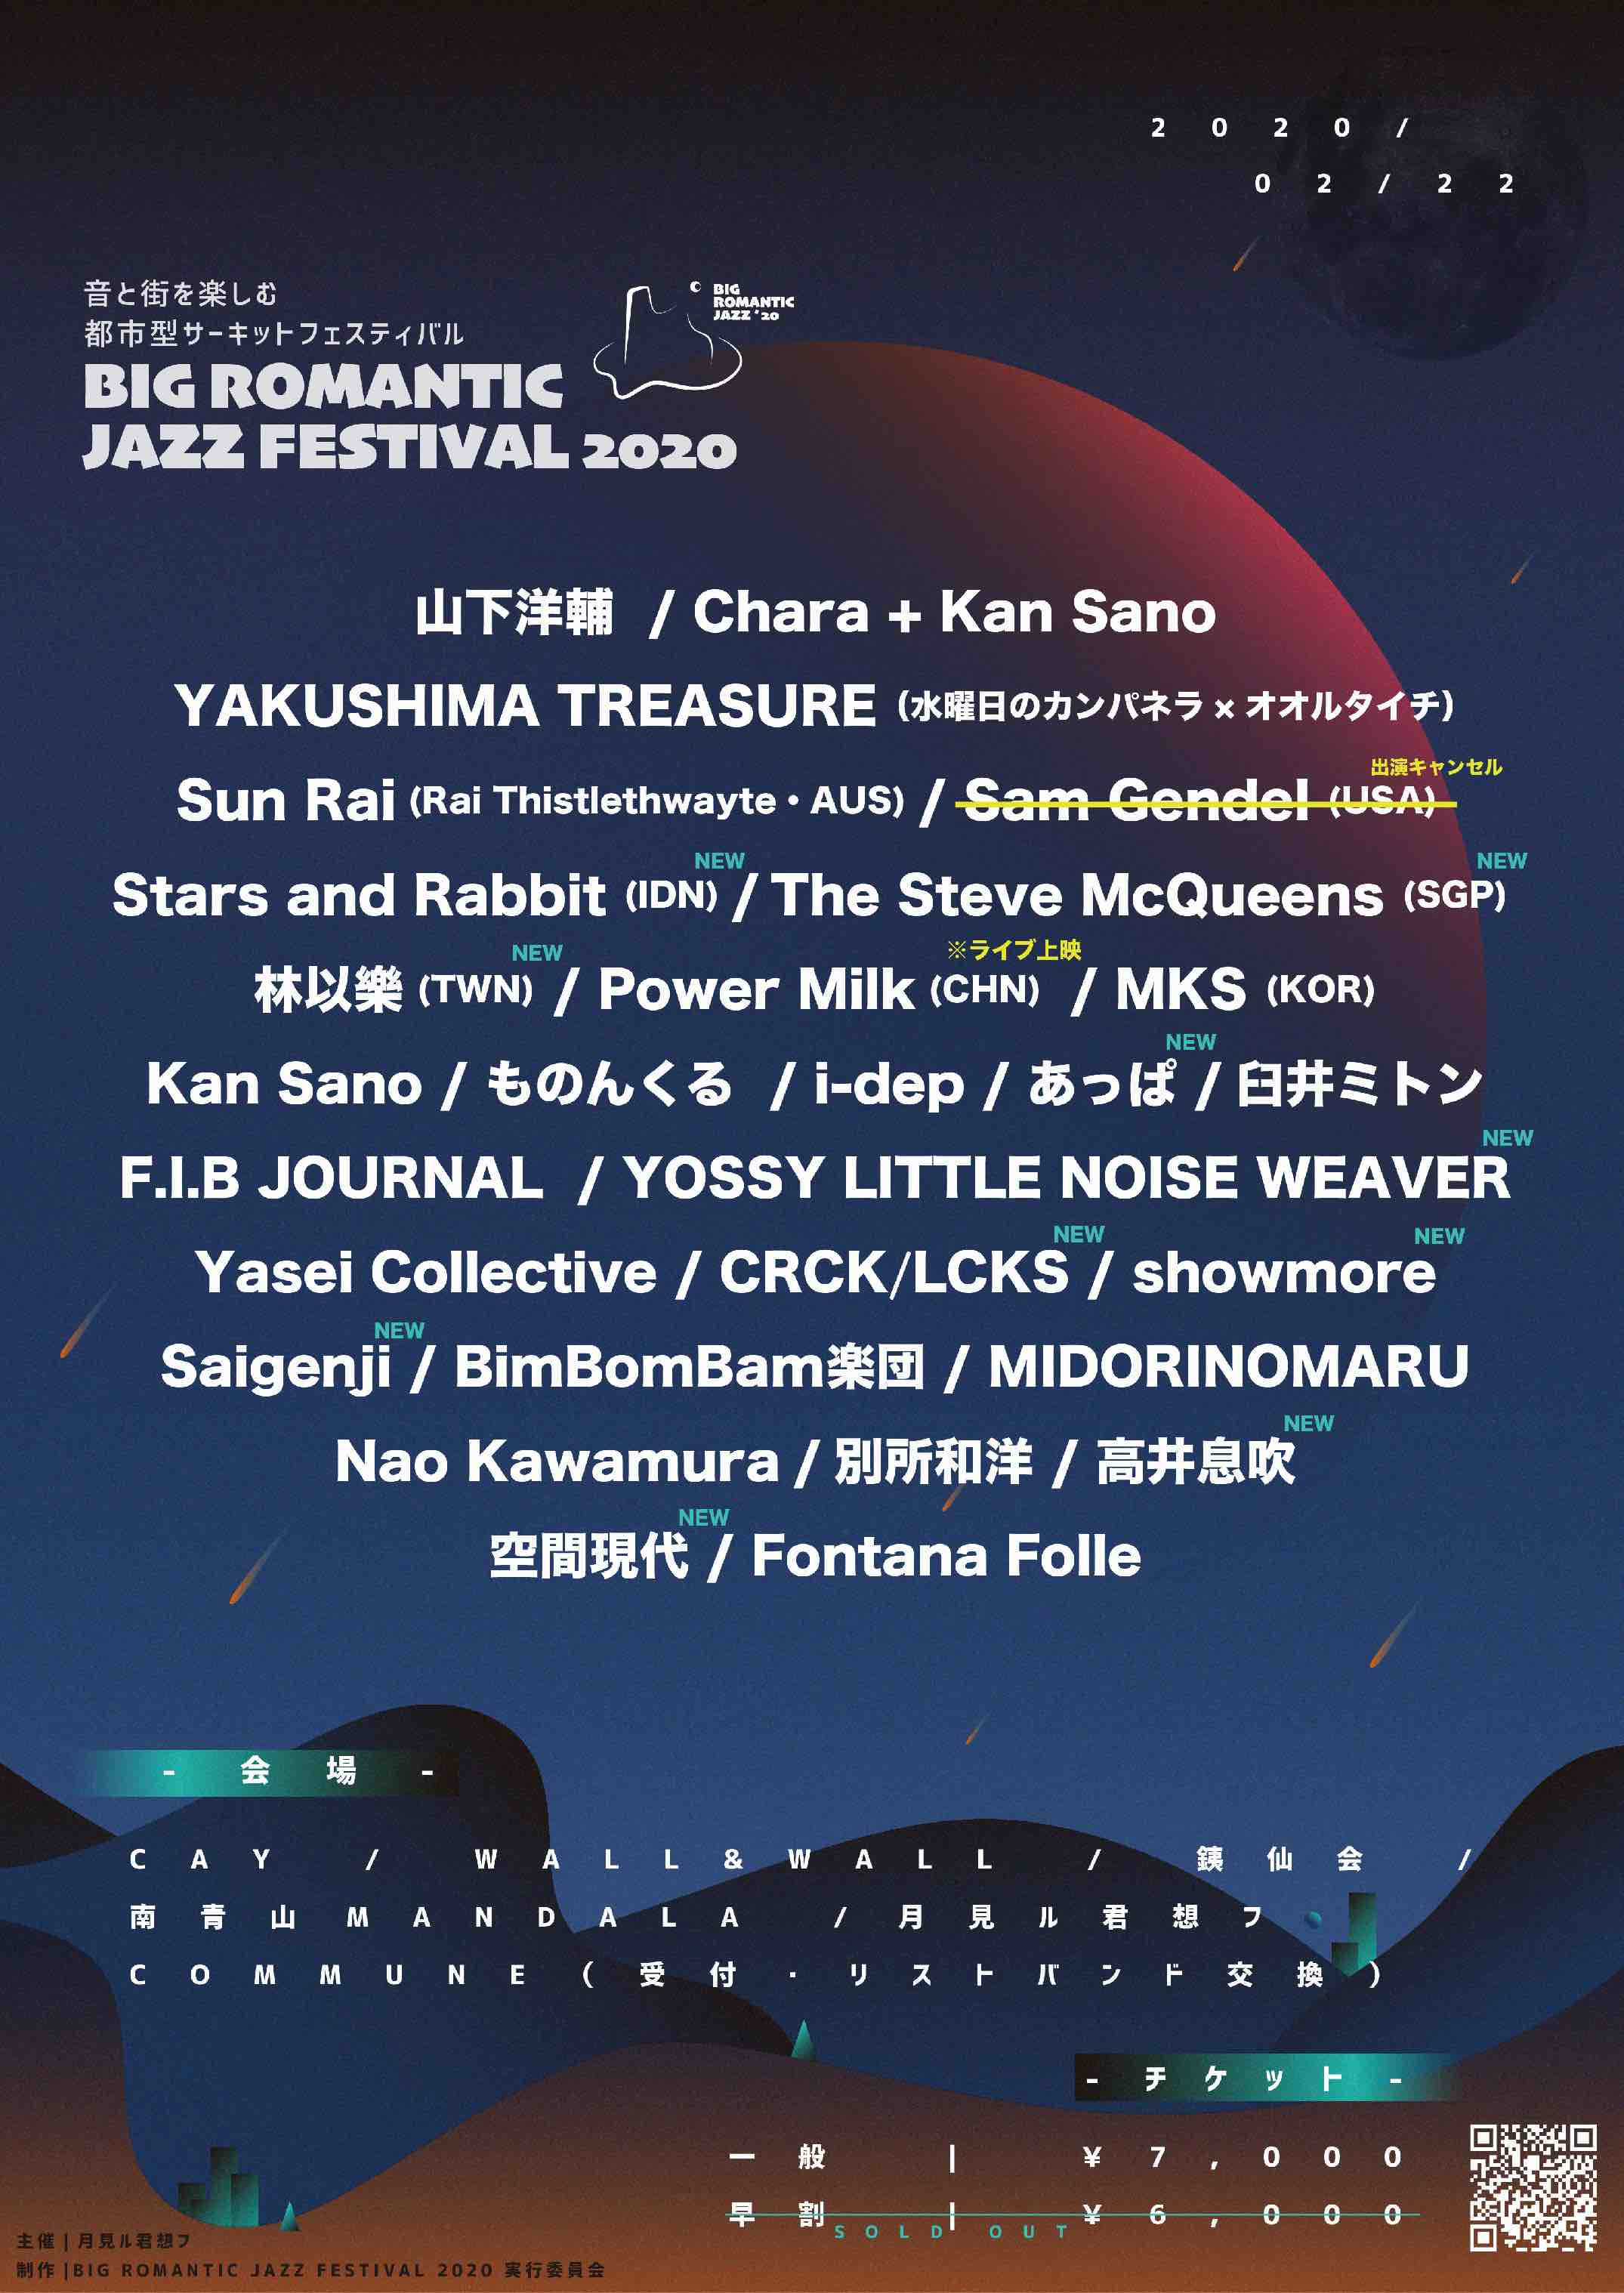 BIG ROMANTIC JAZZ FESTIVAL 2020